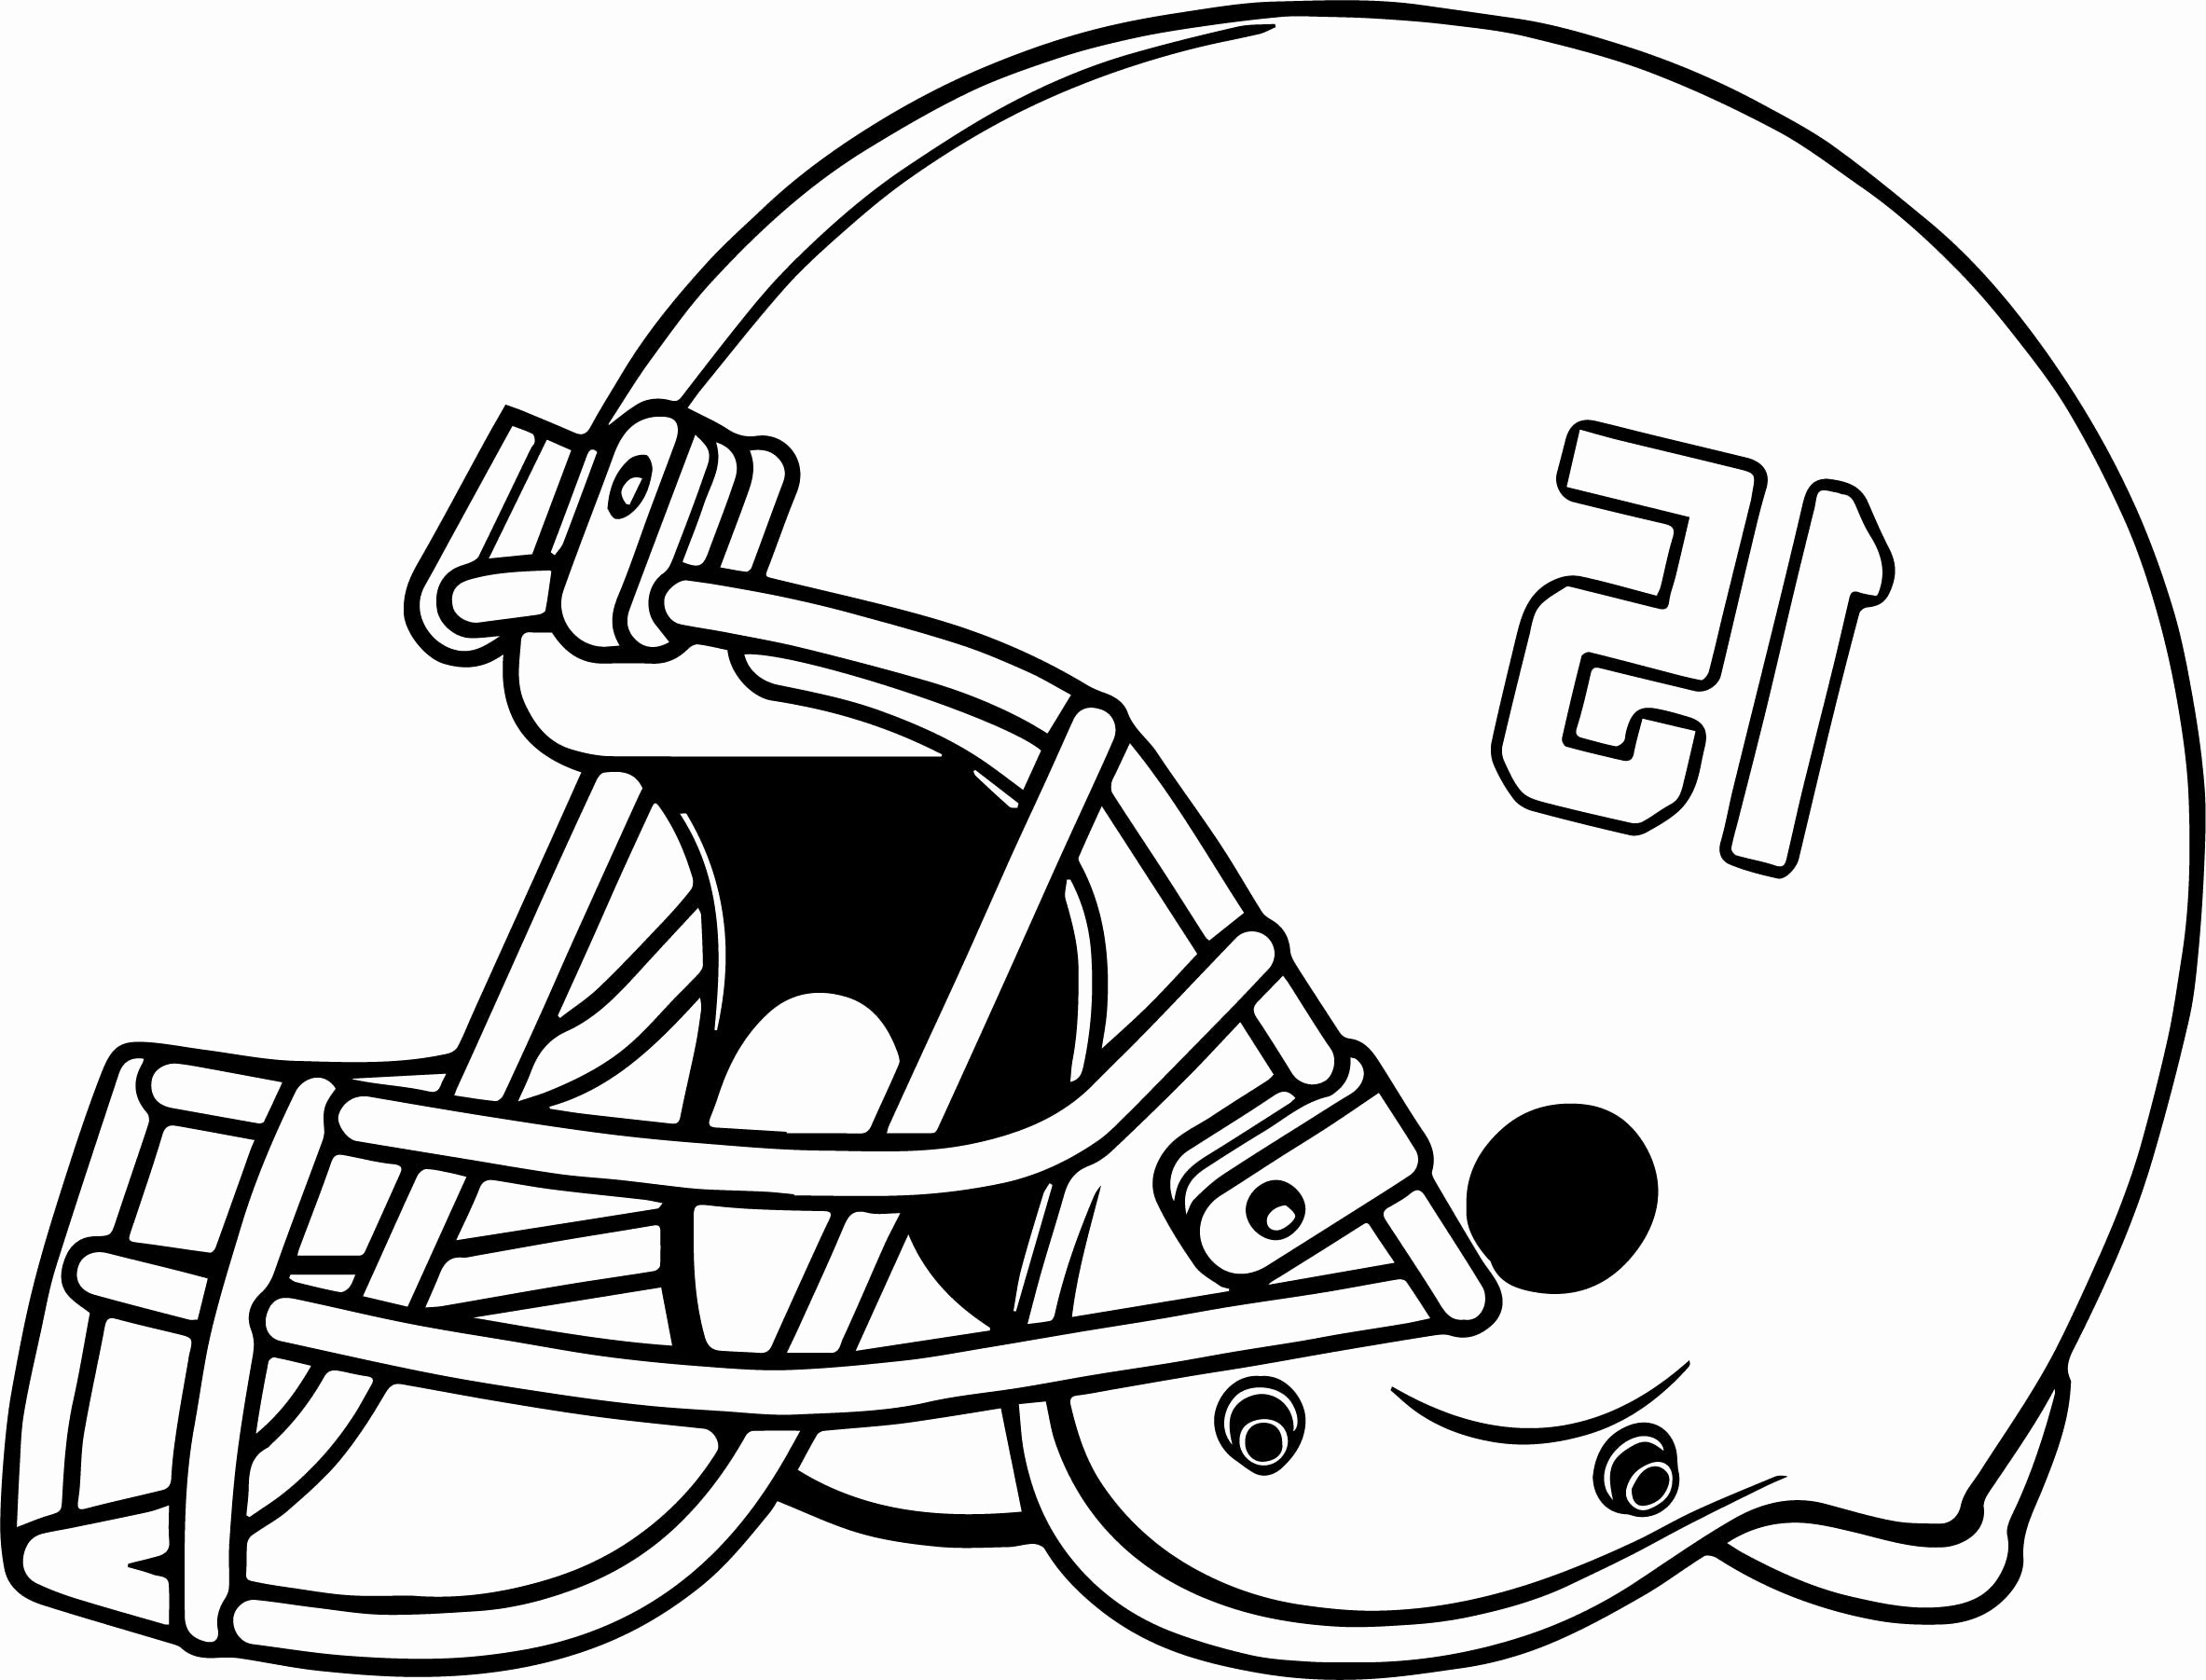 Football Helmet Coloring Page Football Helmets Coloring Pages Xflt ...